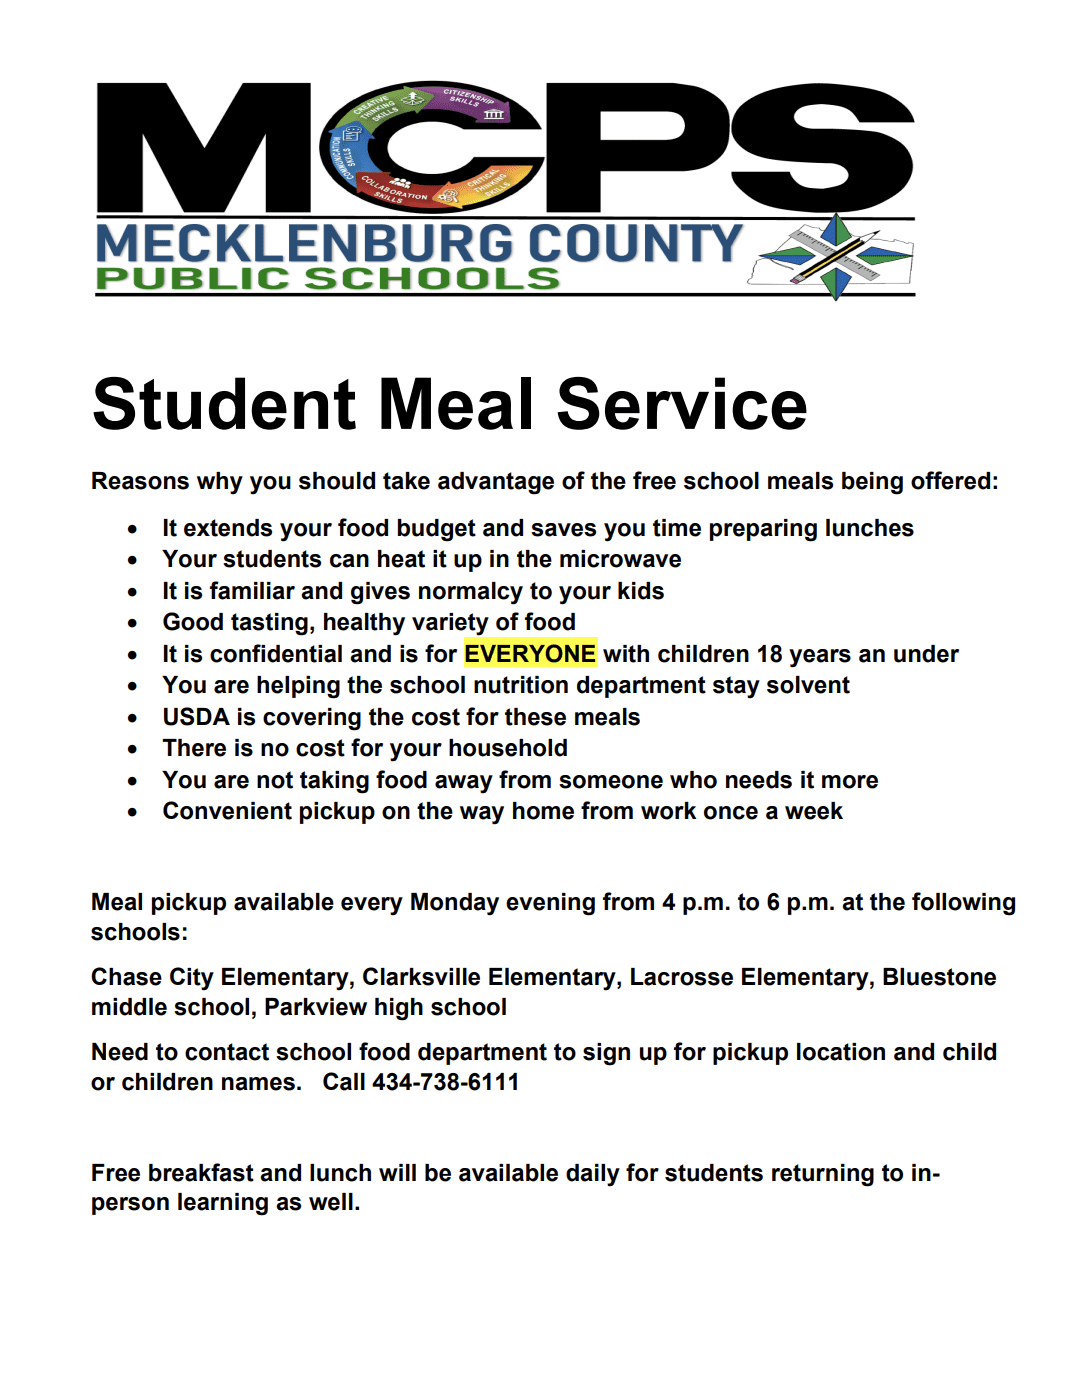 Student Meal Services FAQ